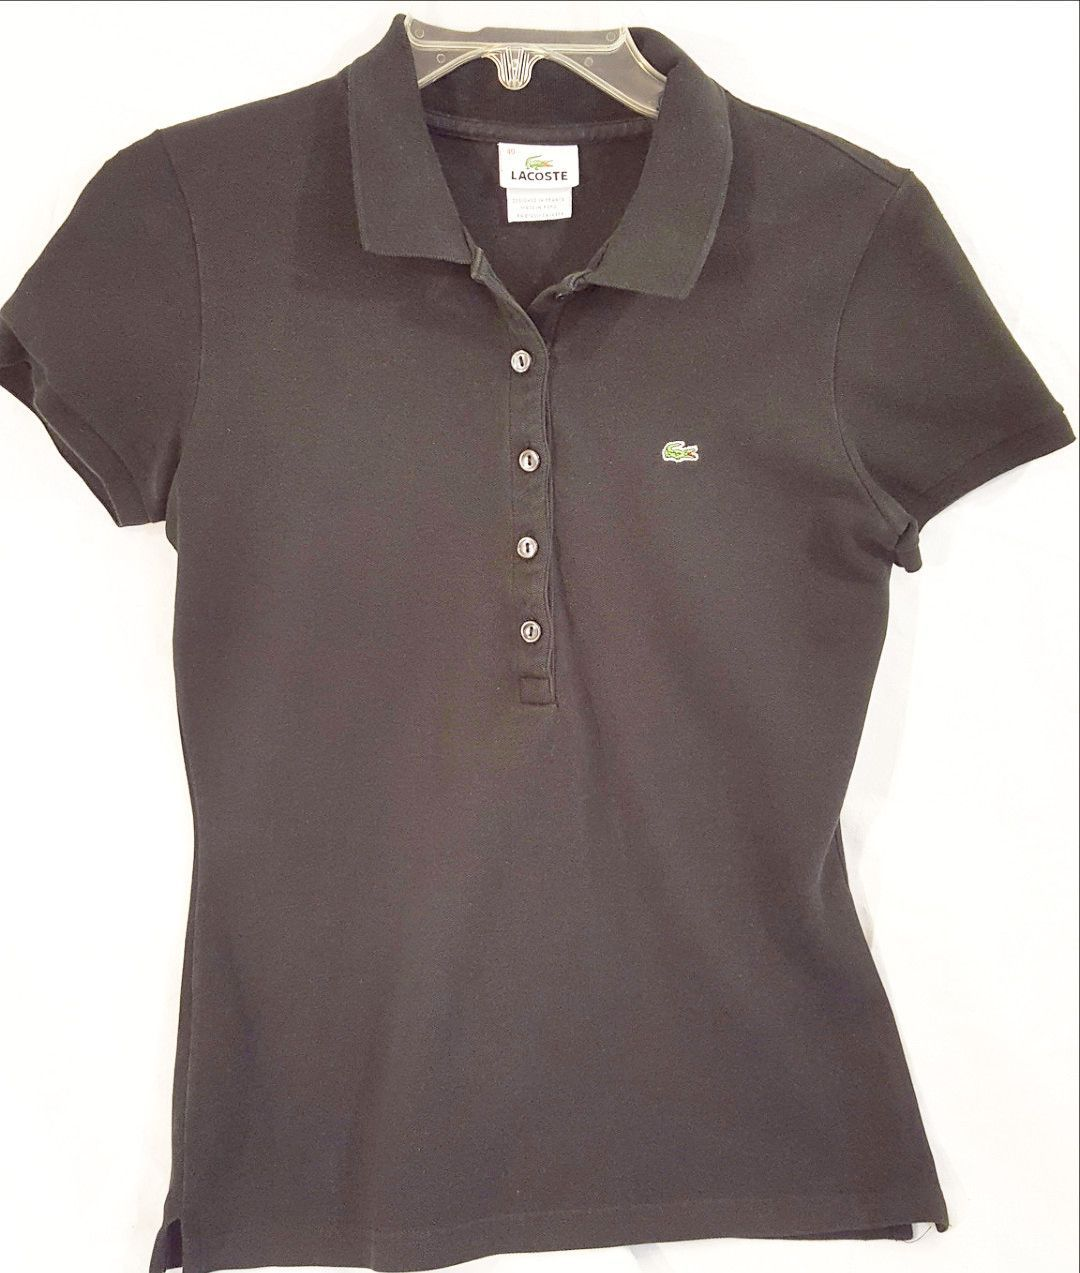 Black Lacoste Polo Shirt